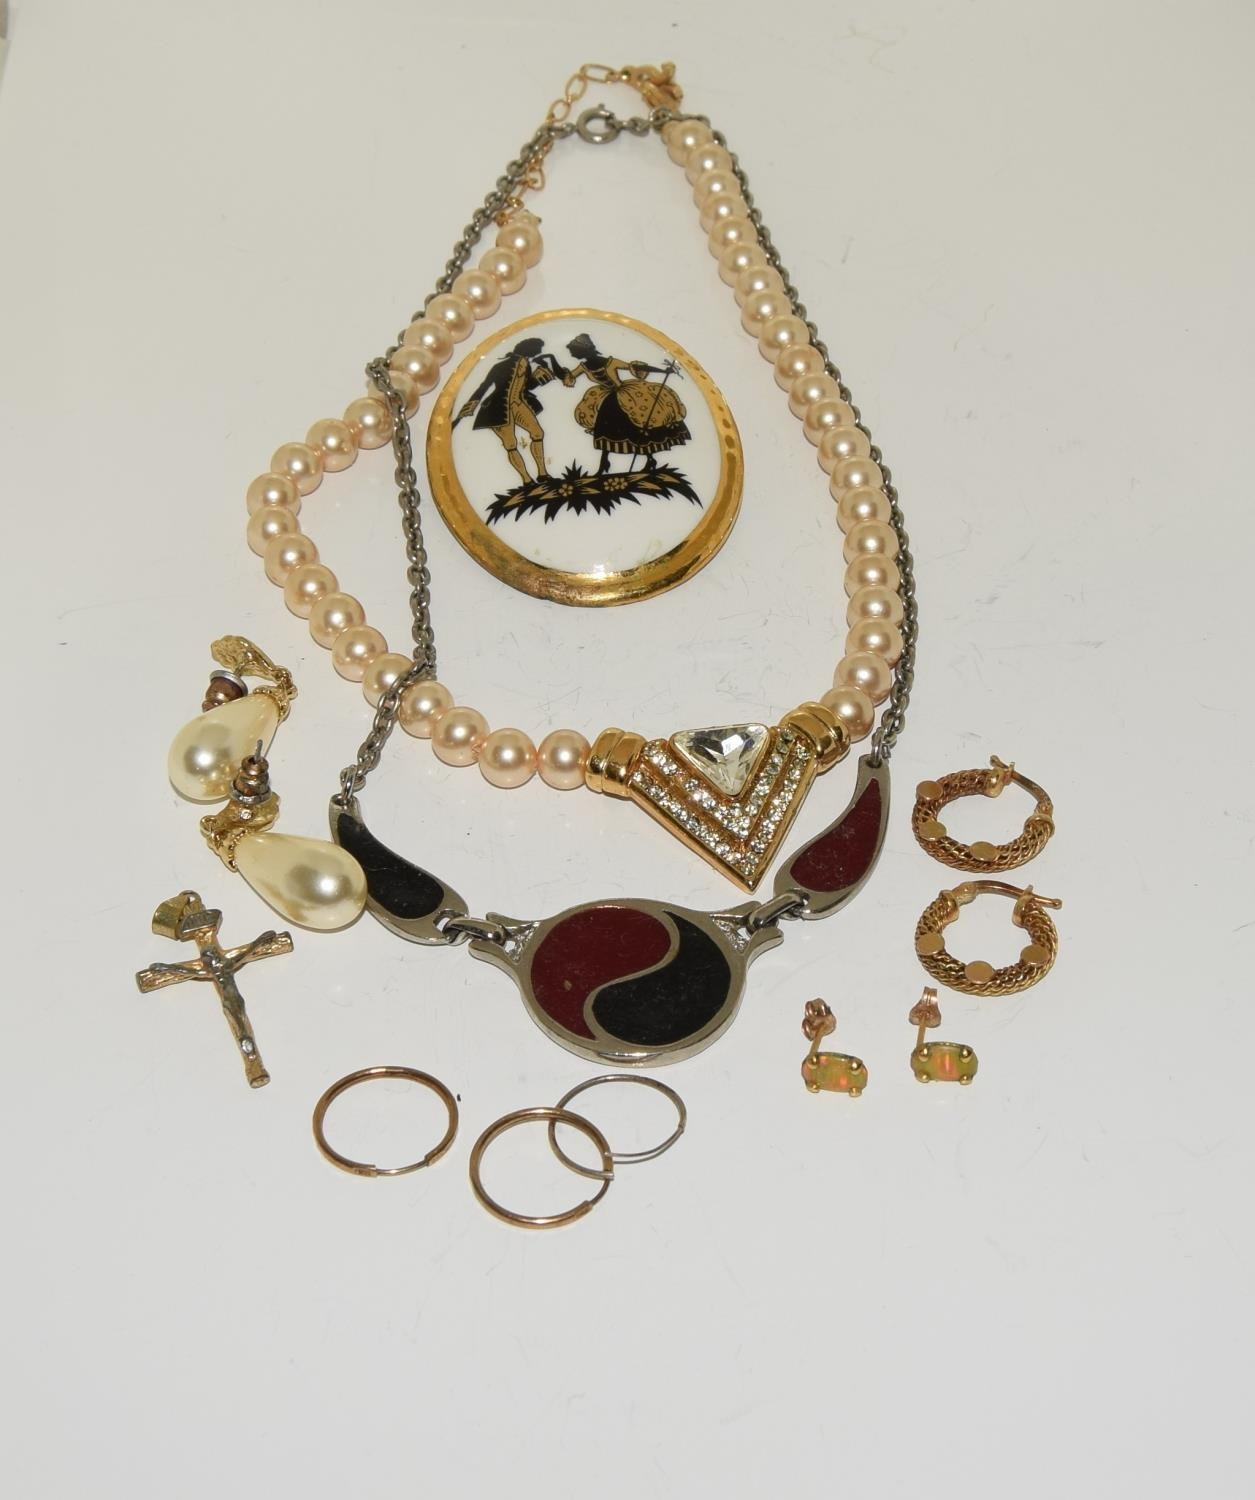 Misc jewellery to include gold